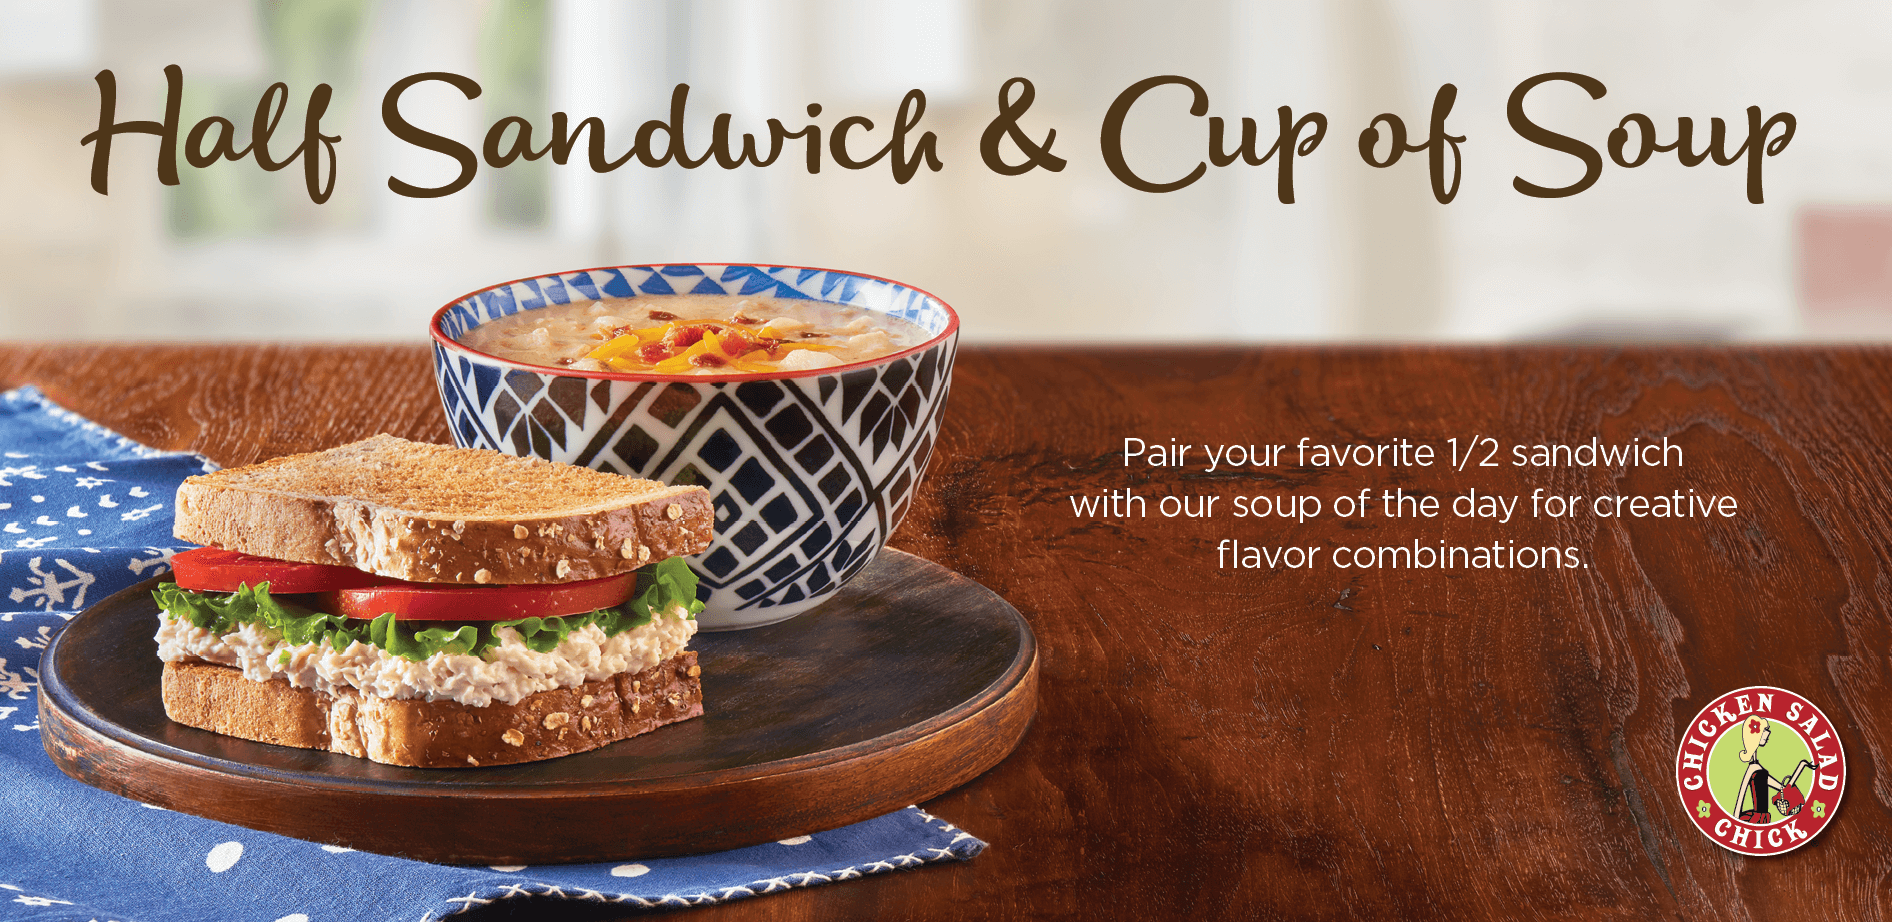 Limited Time Offer! Half Sandwich & Cup of Soup Combination.